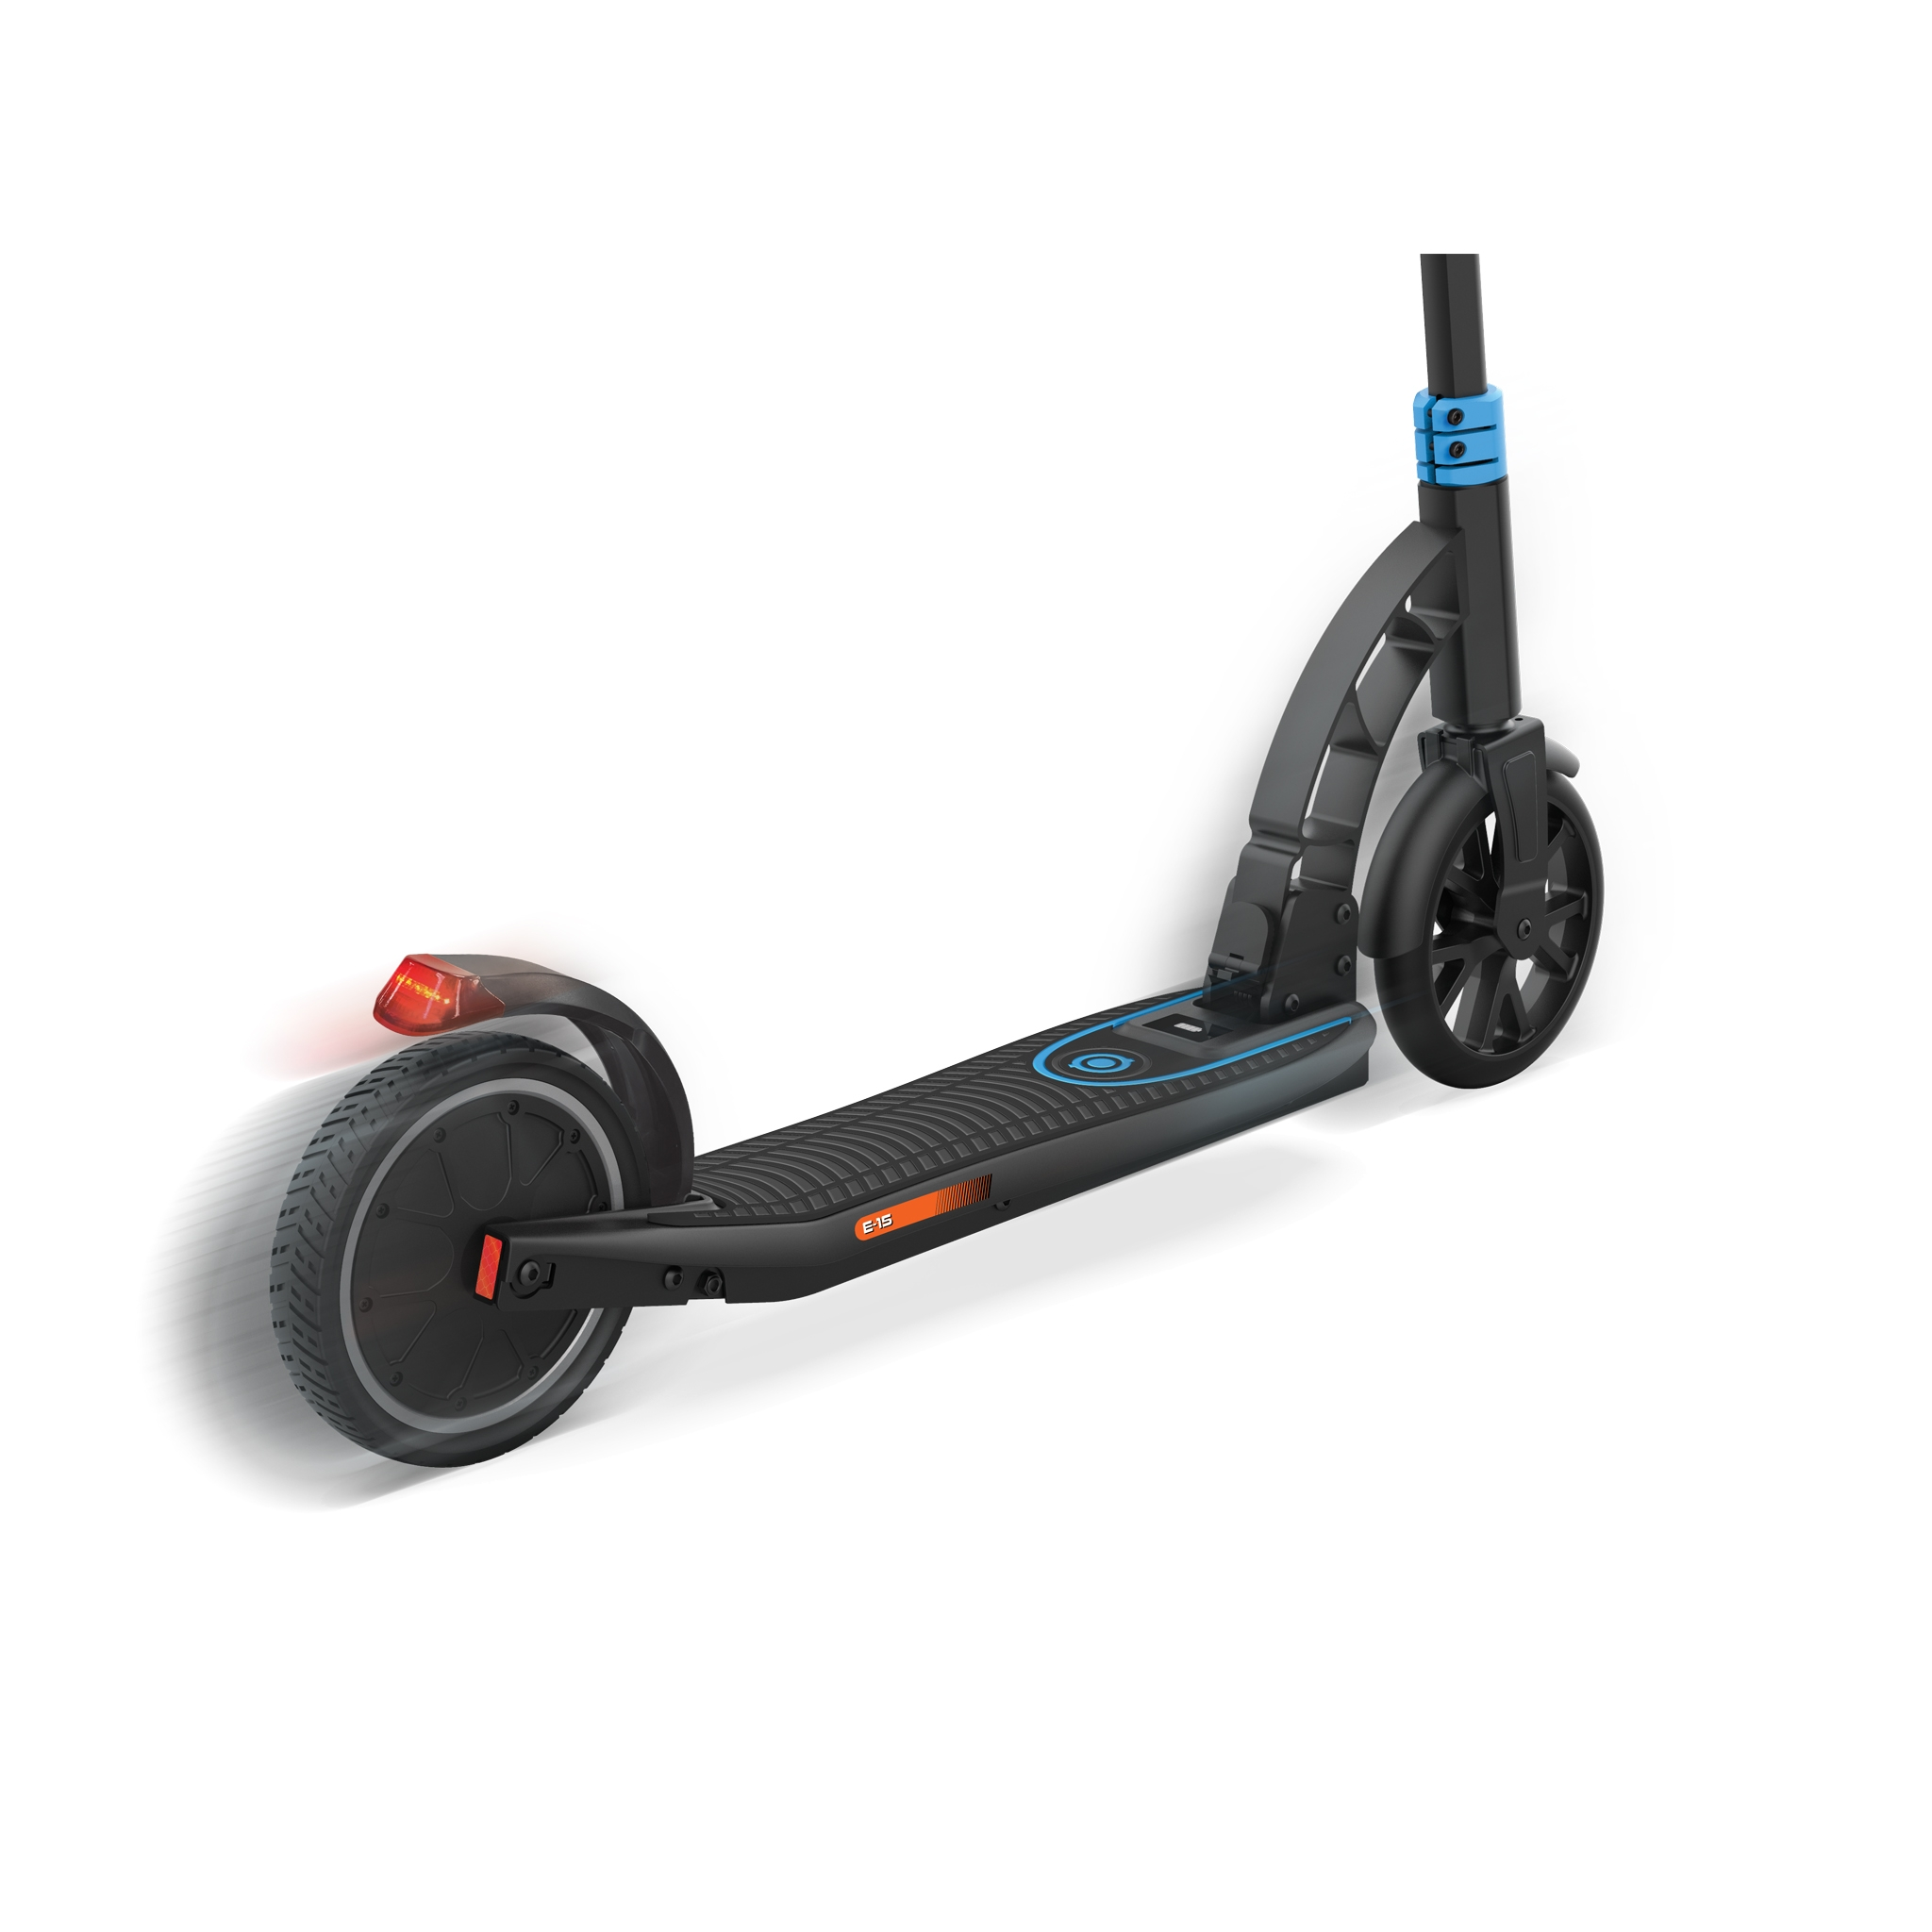 Globber-ONE-K-E-MOTION-15-foldable-electric-scooter-for-teens-and-young-adults-sky-blue 3